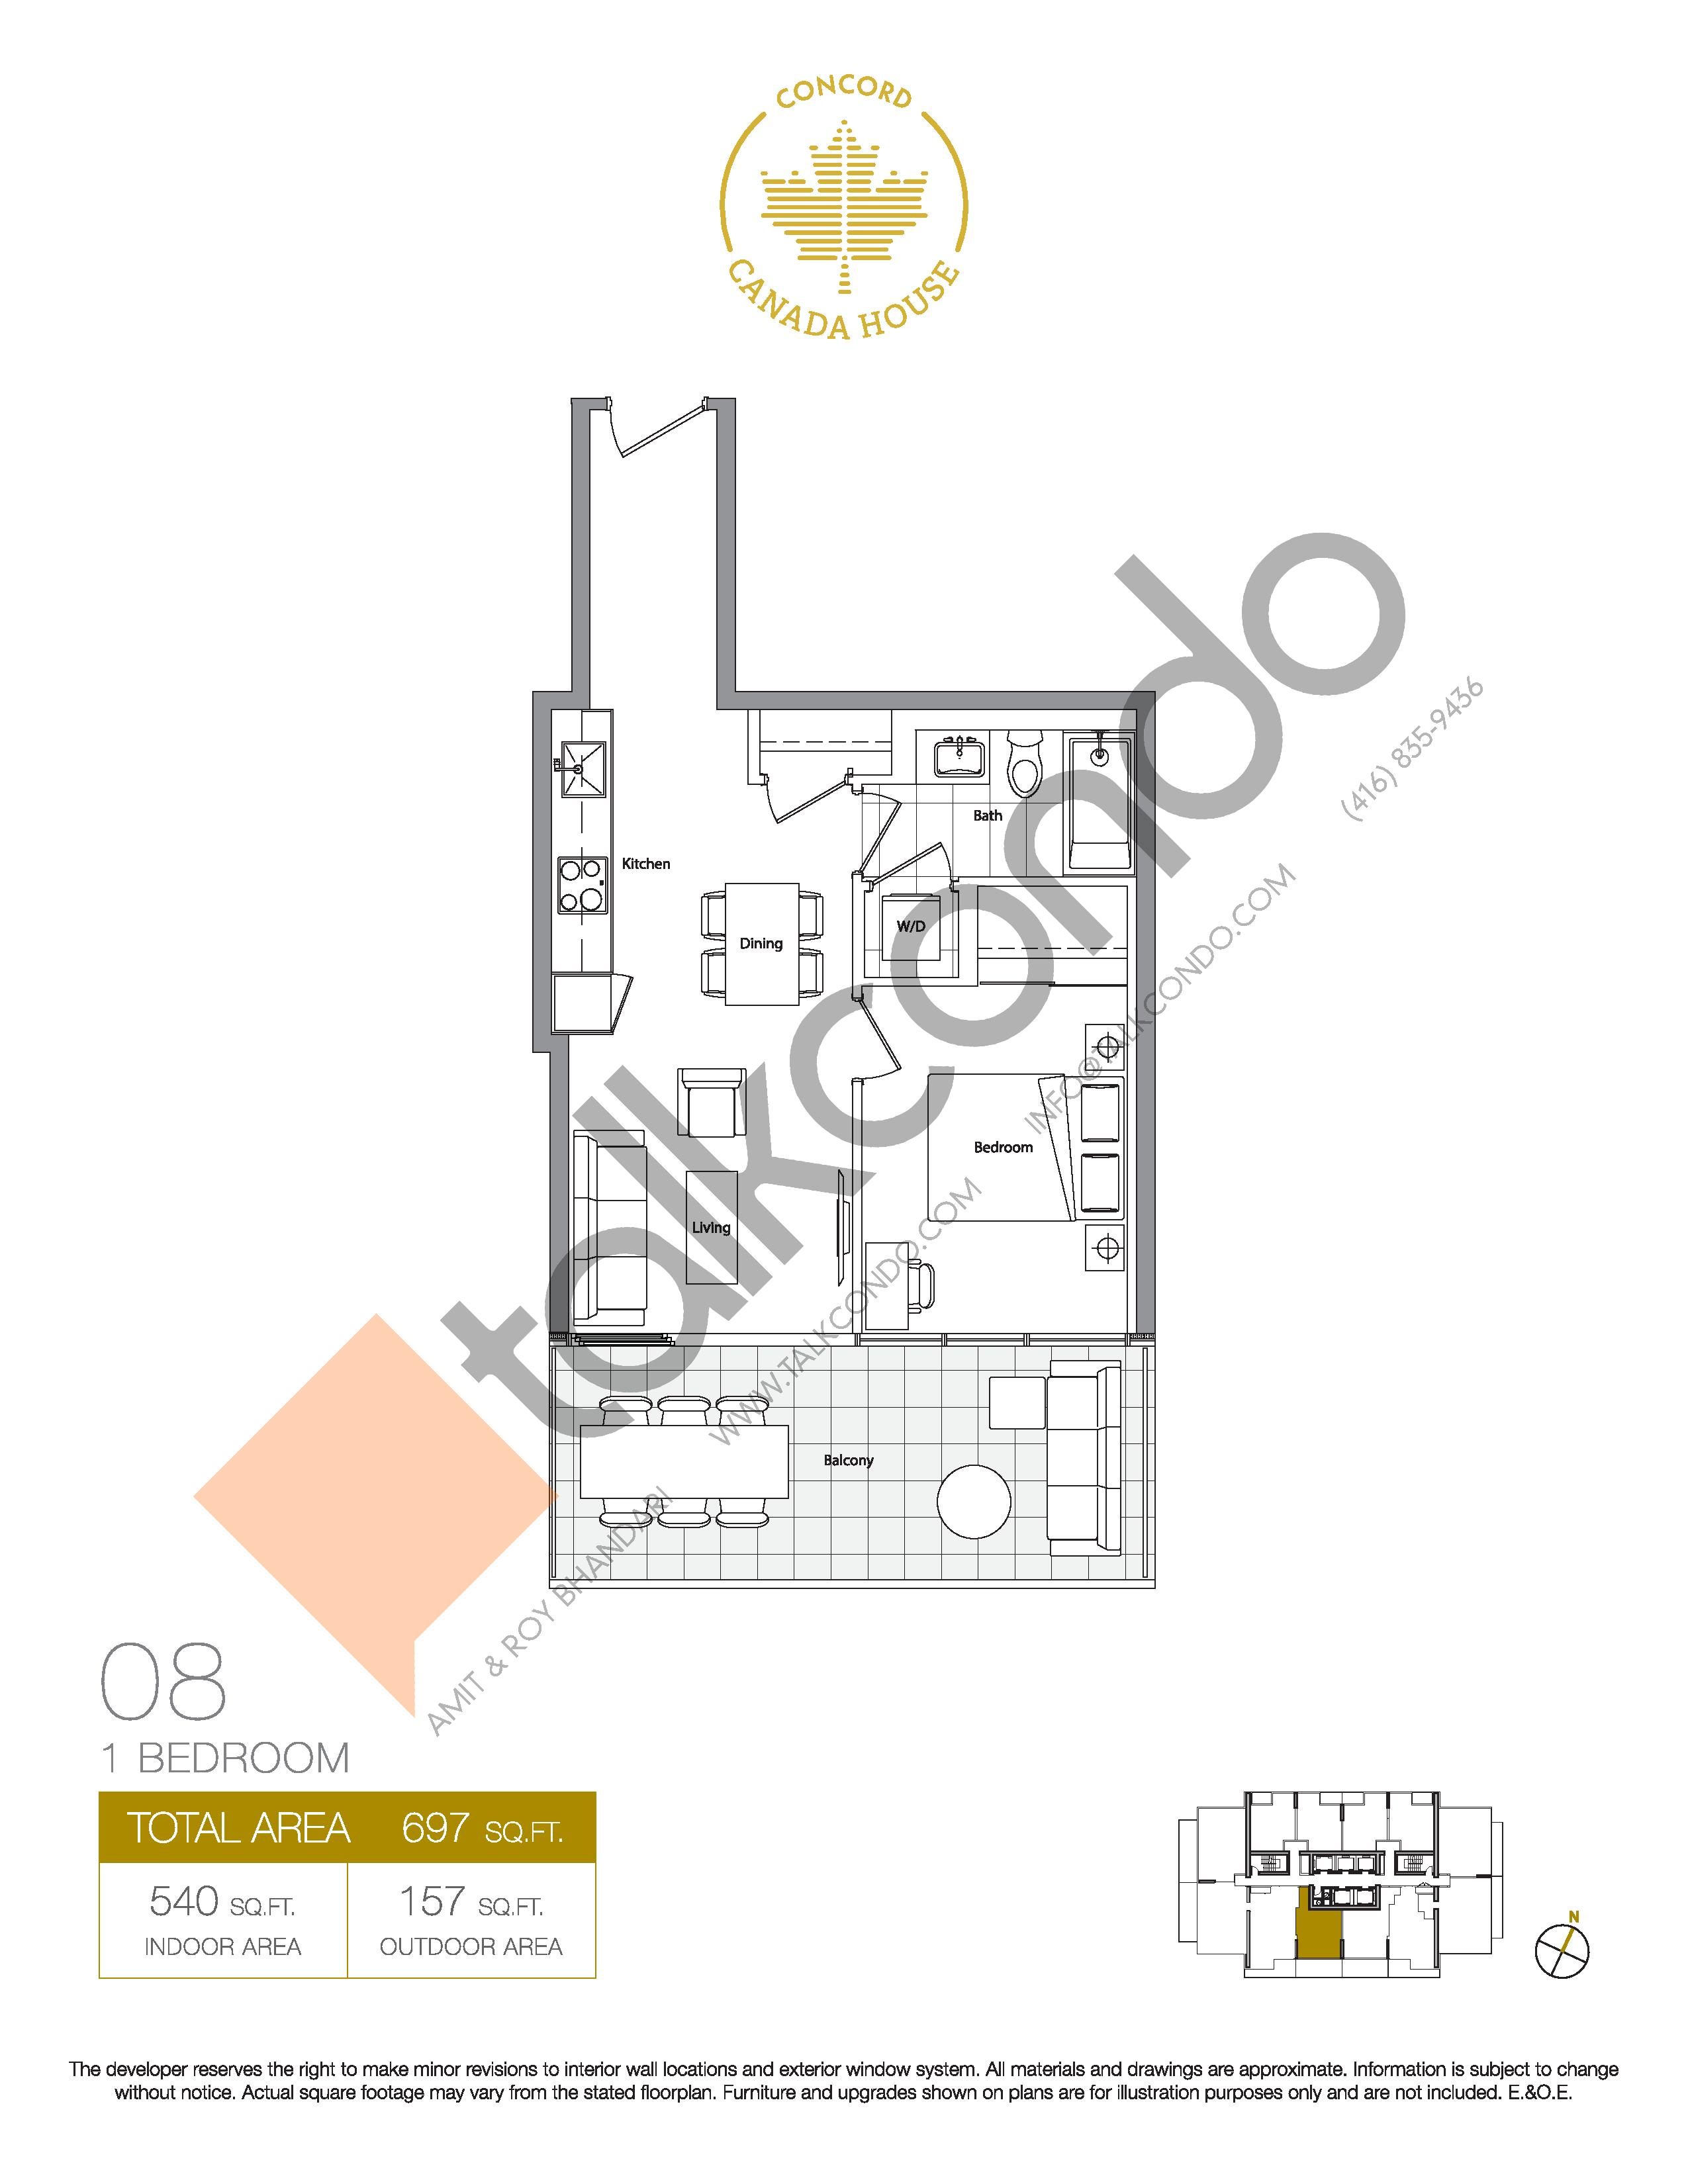 08 - East Tower Floor Plan at Concord Canada House Condos - 540 sq.ft